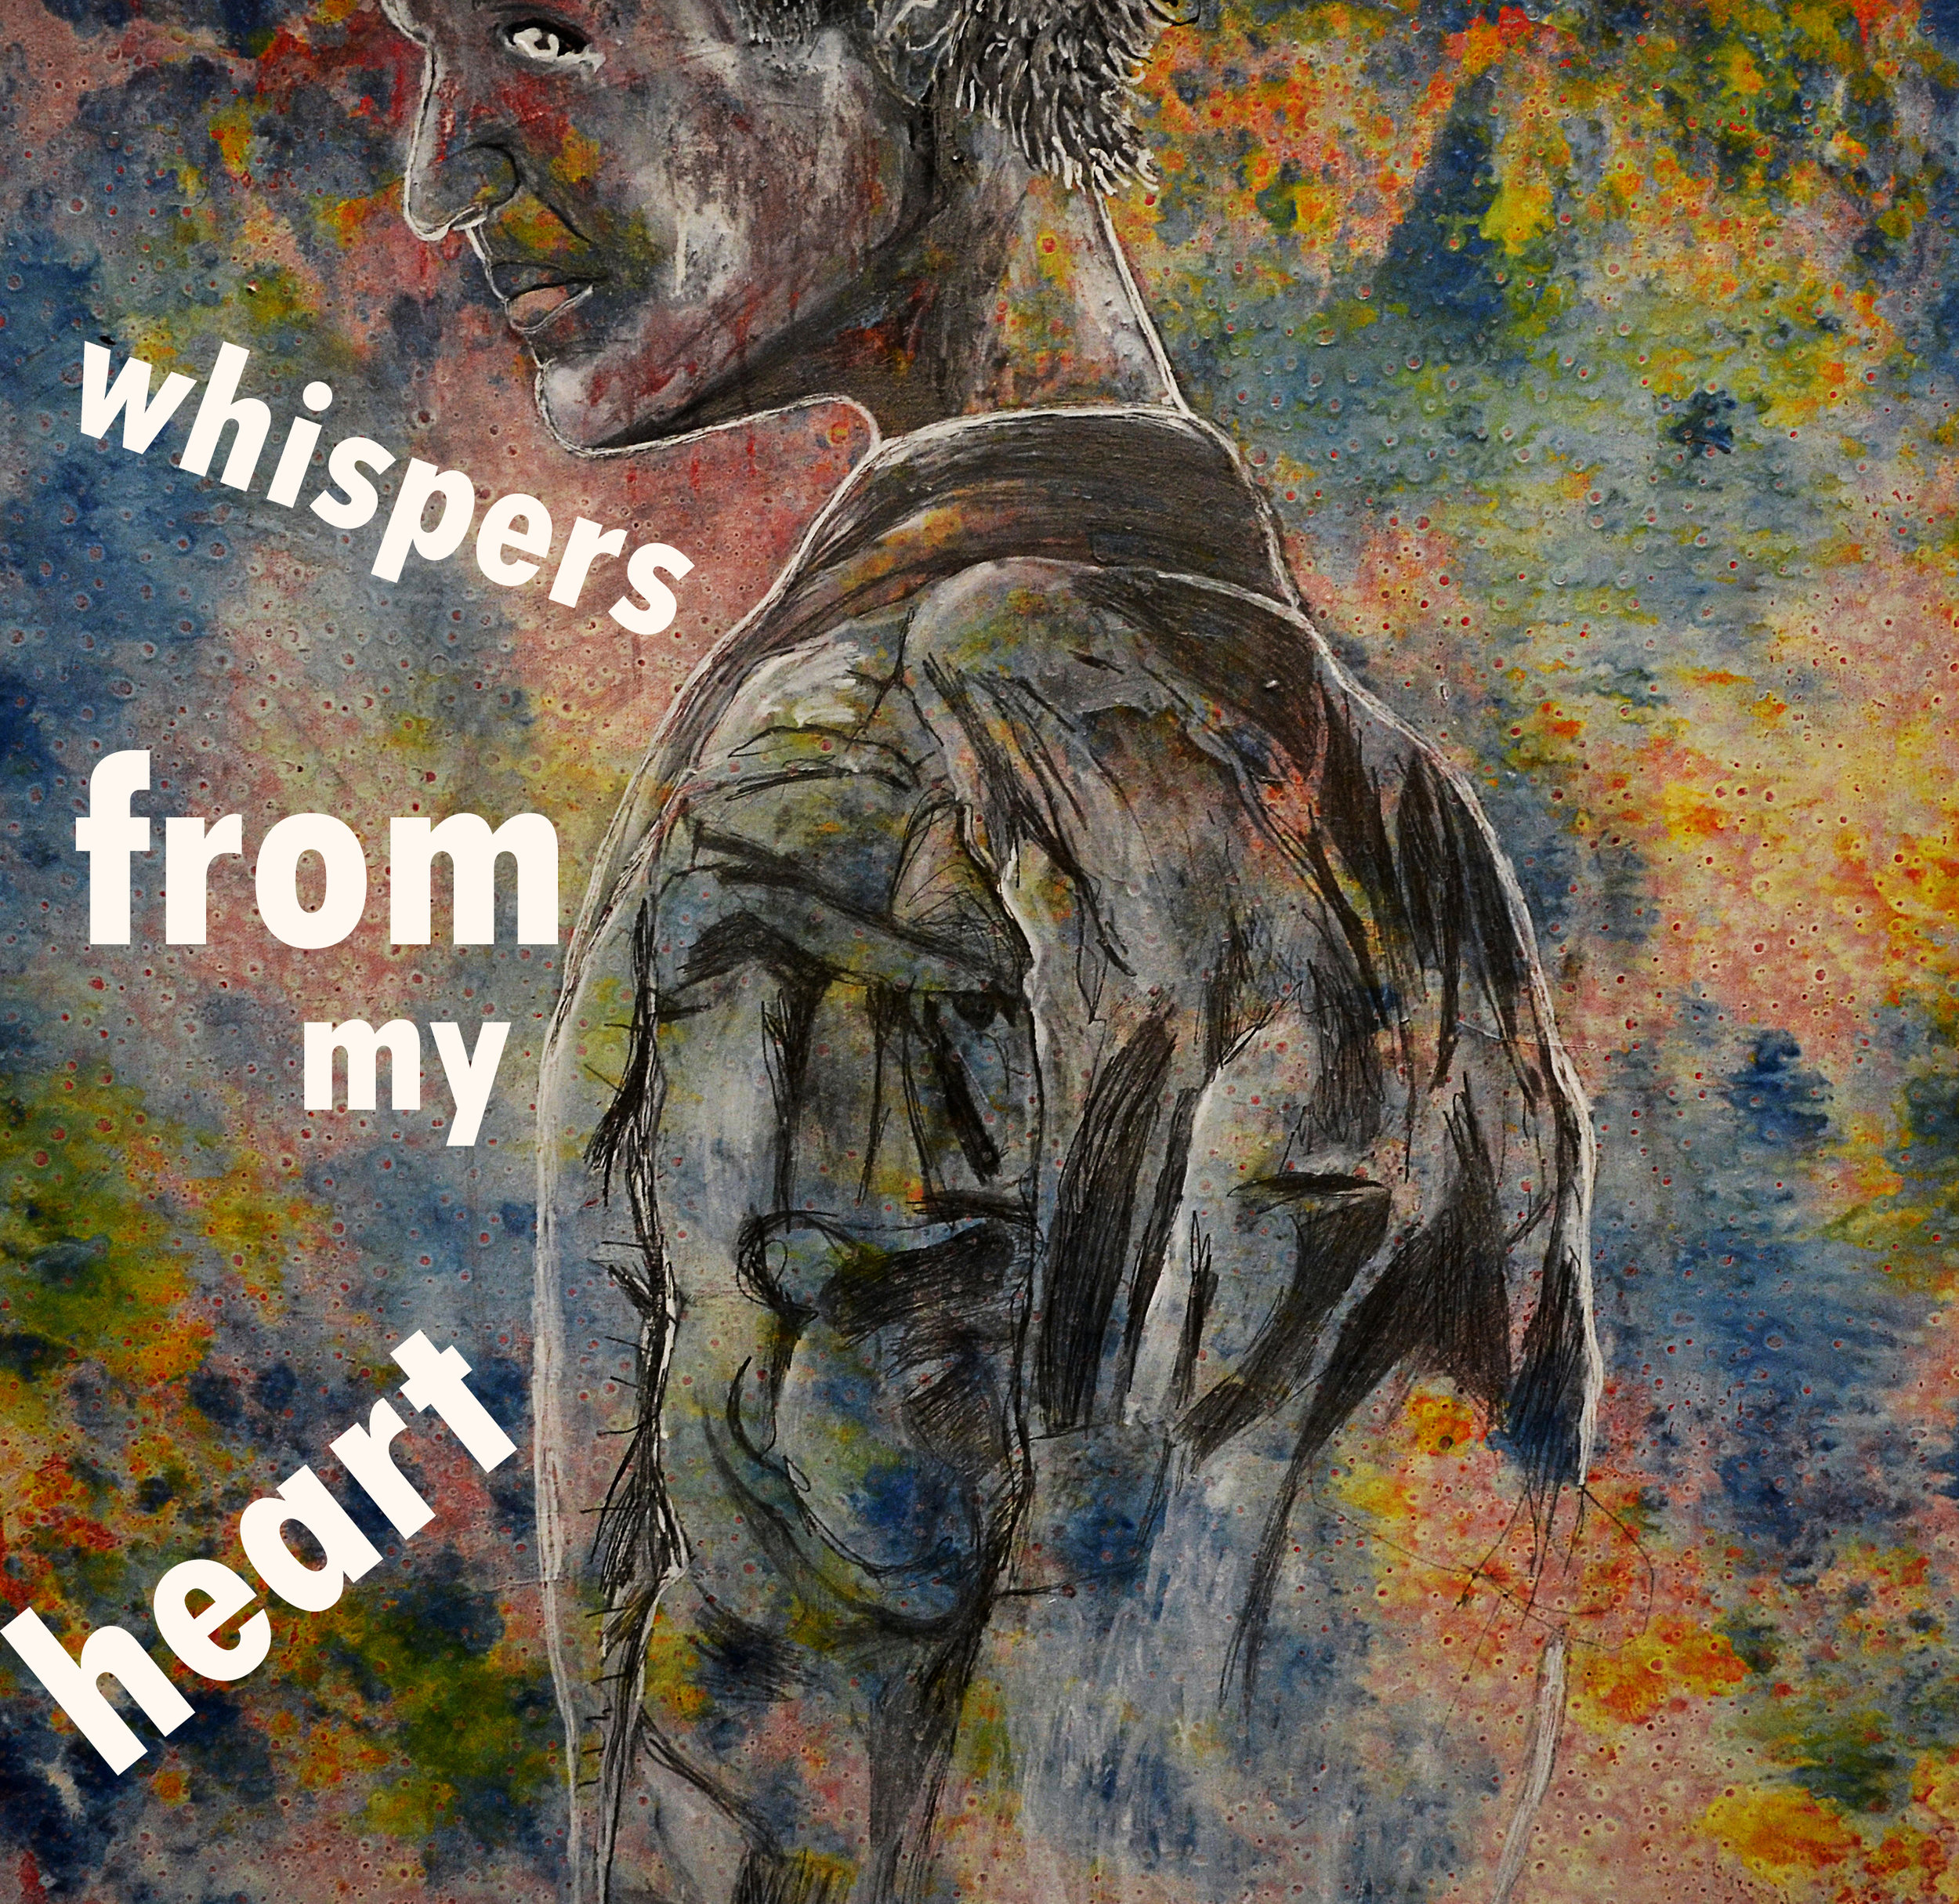 Whispers from my heart